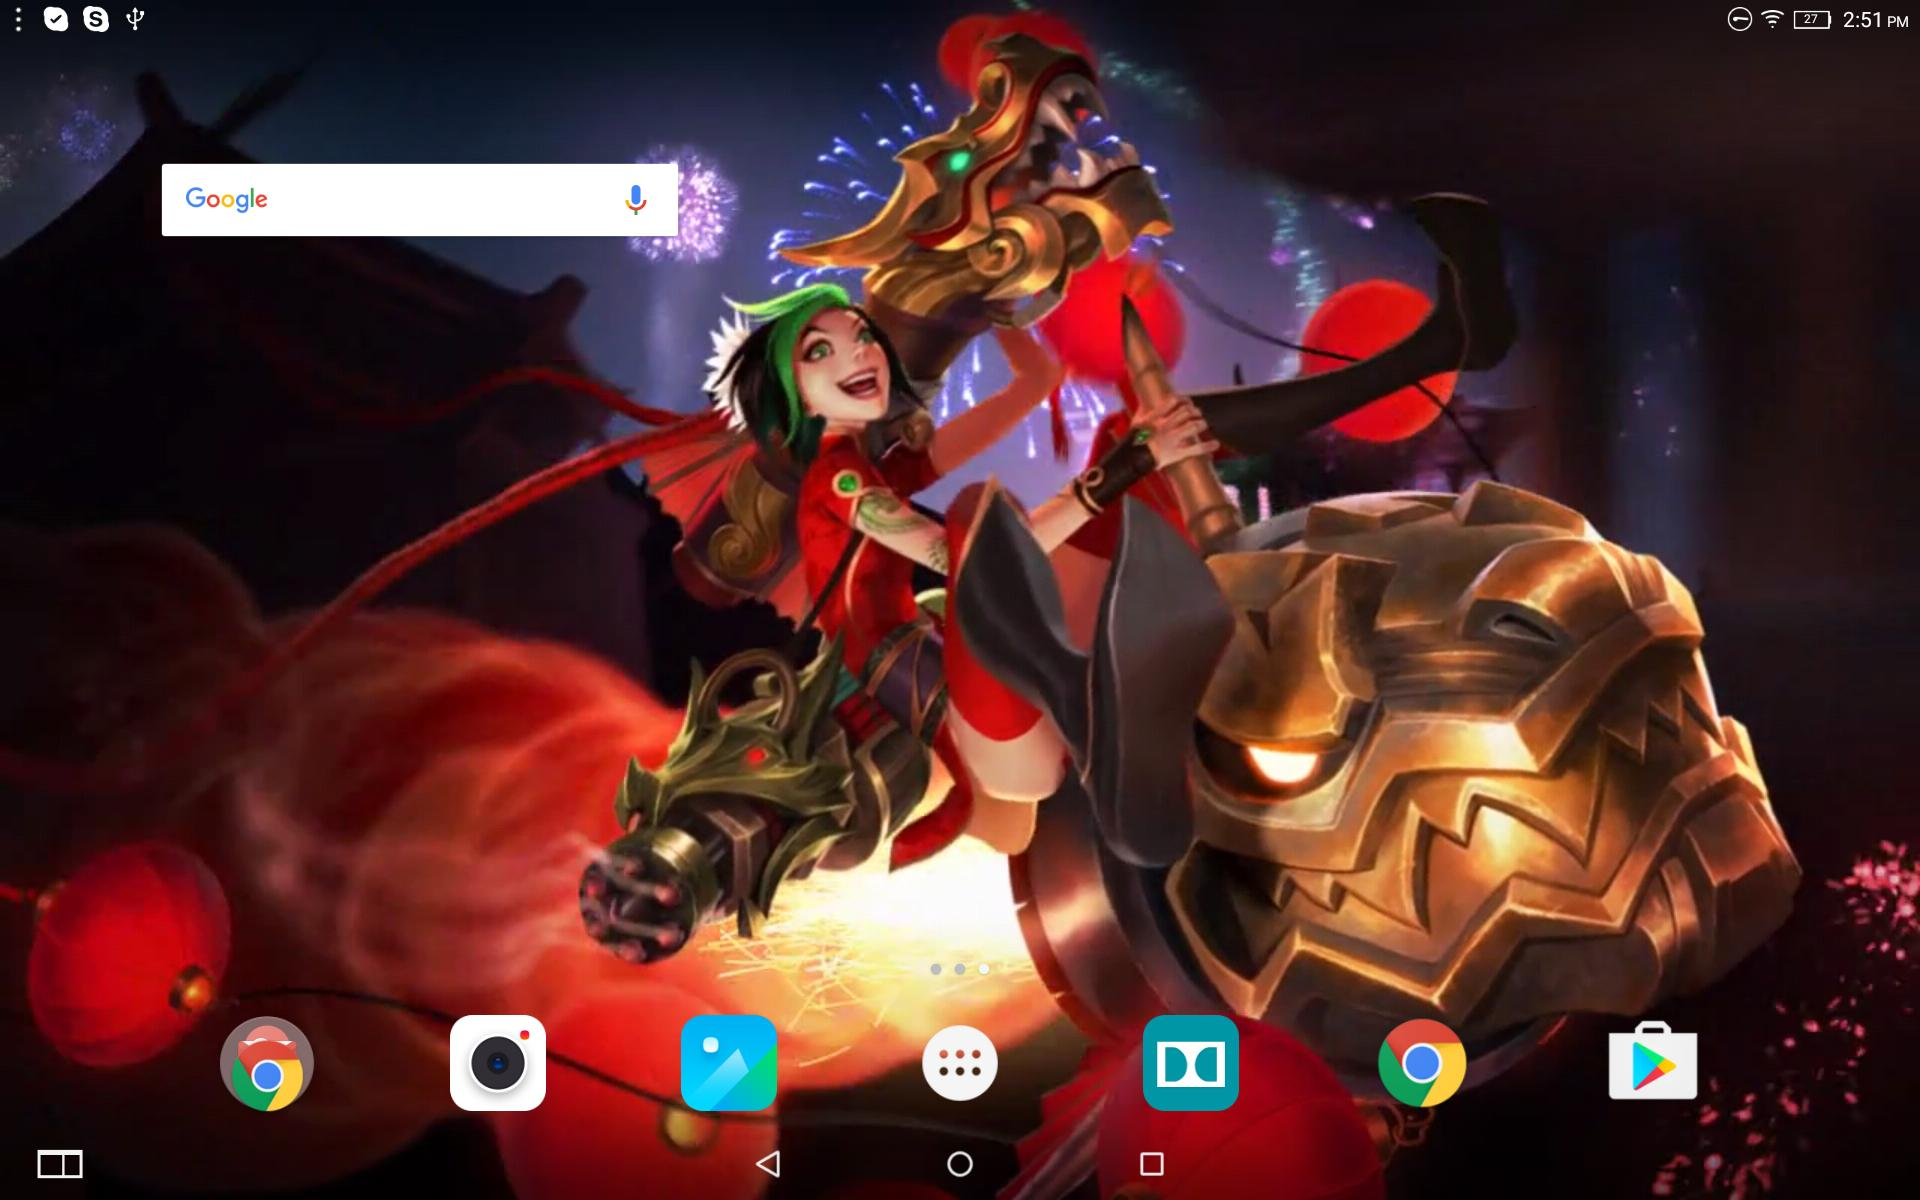 Jinx Hd Live Wallpapers For Android Apk Download